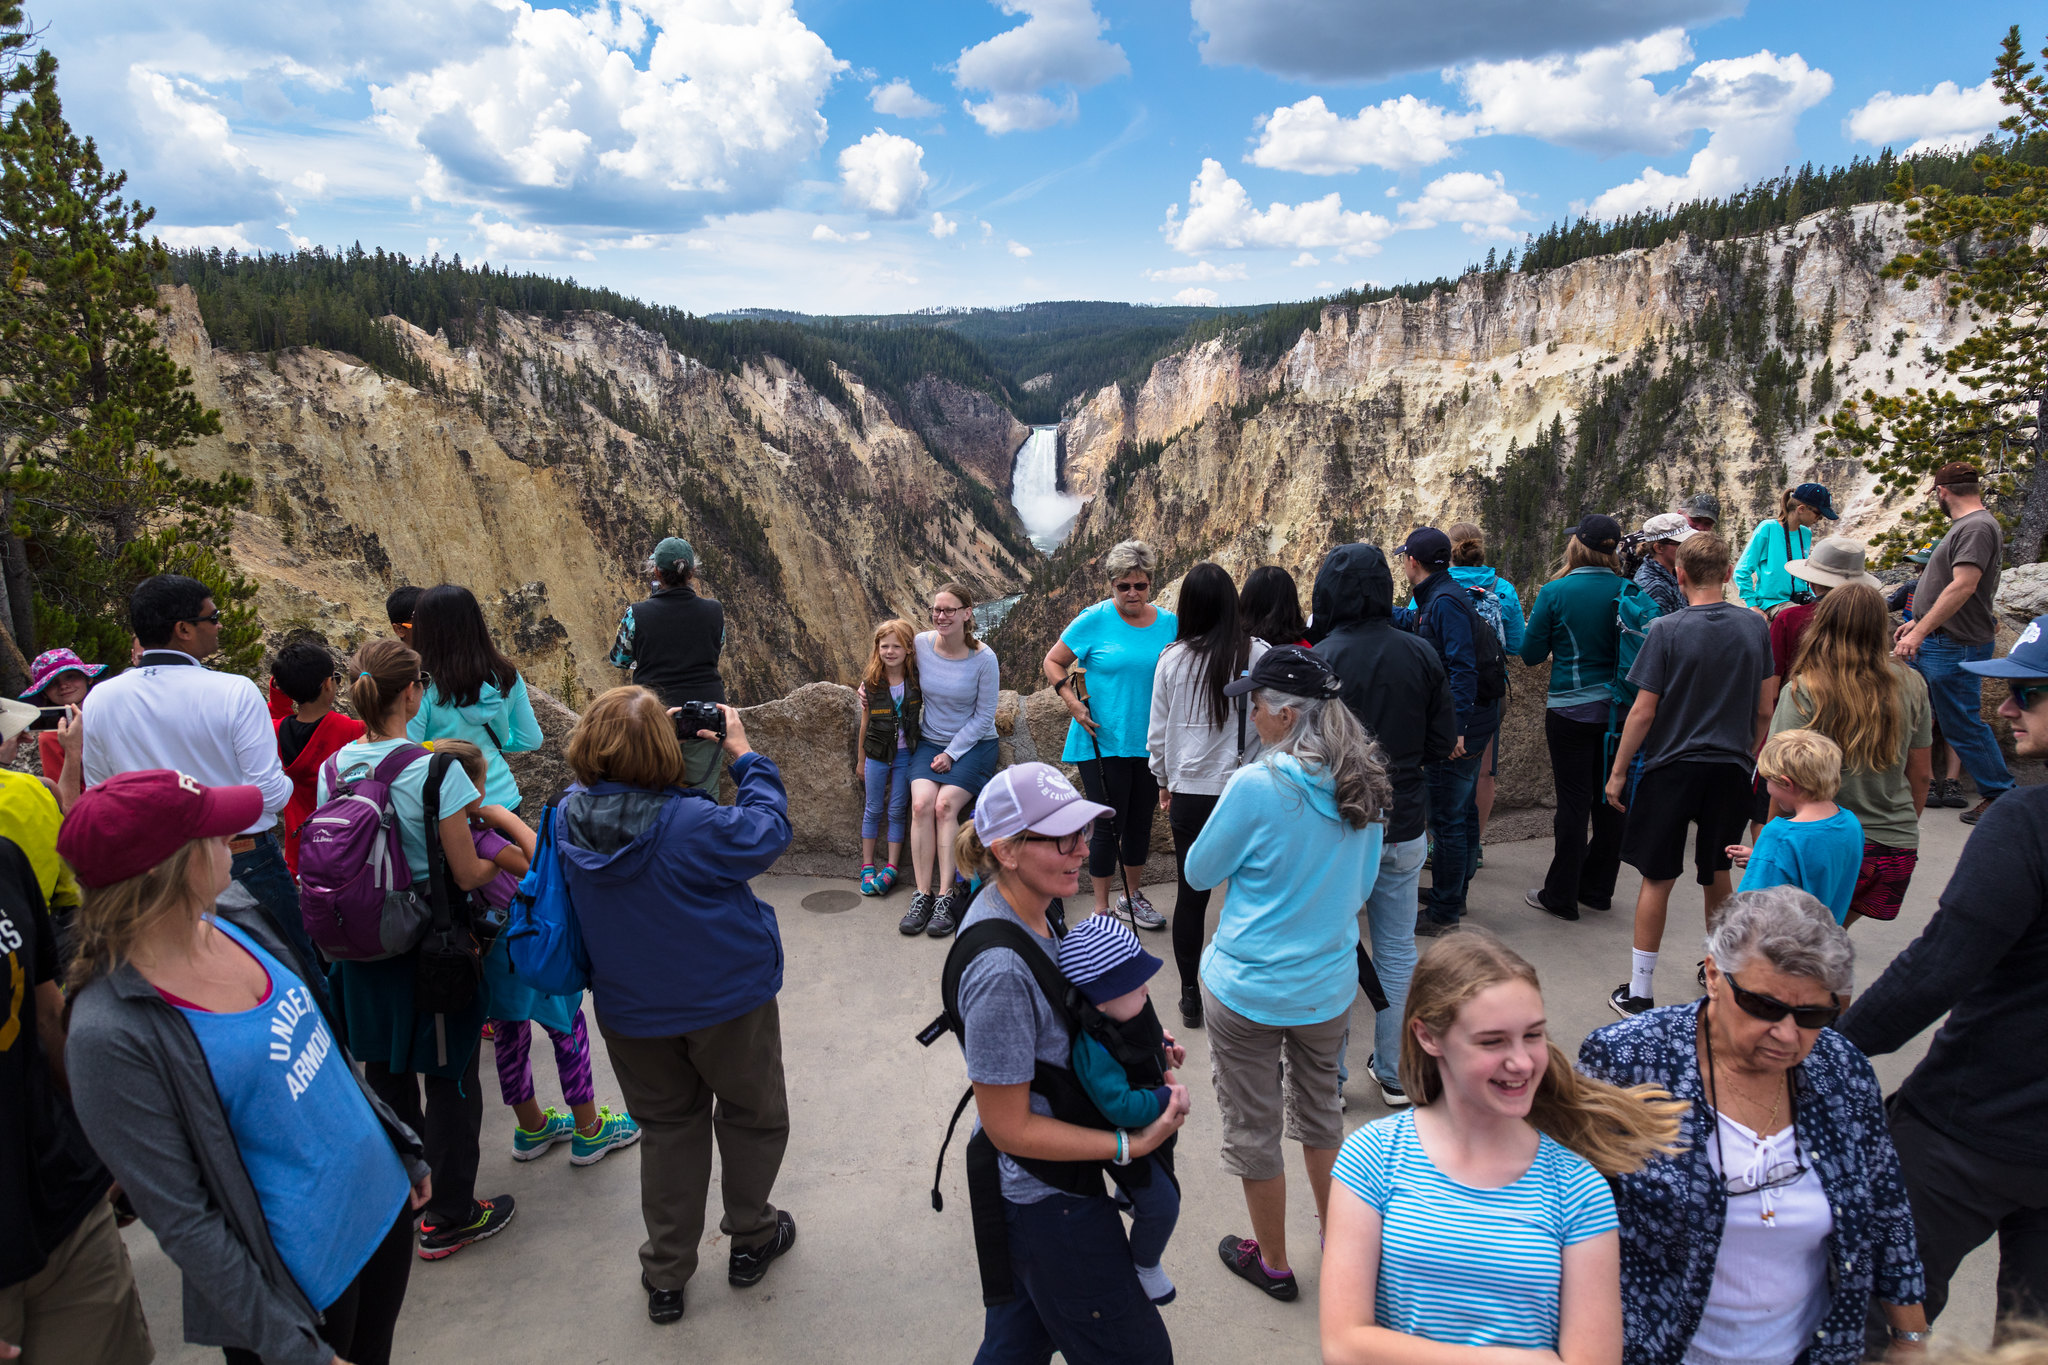 2019 Yellowstone visitation at lowest level since 2014 - Yellowstone National Park (U.S. National Park Service)